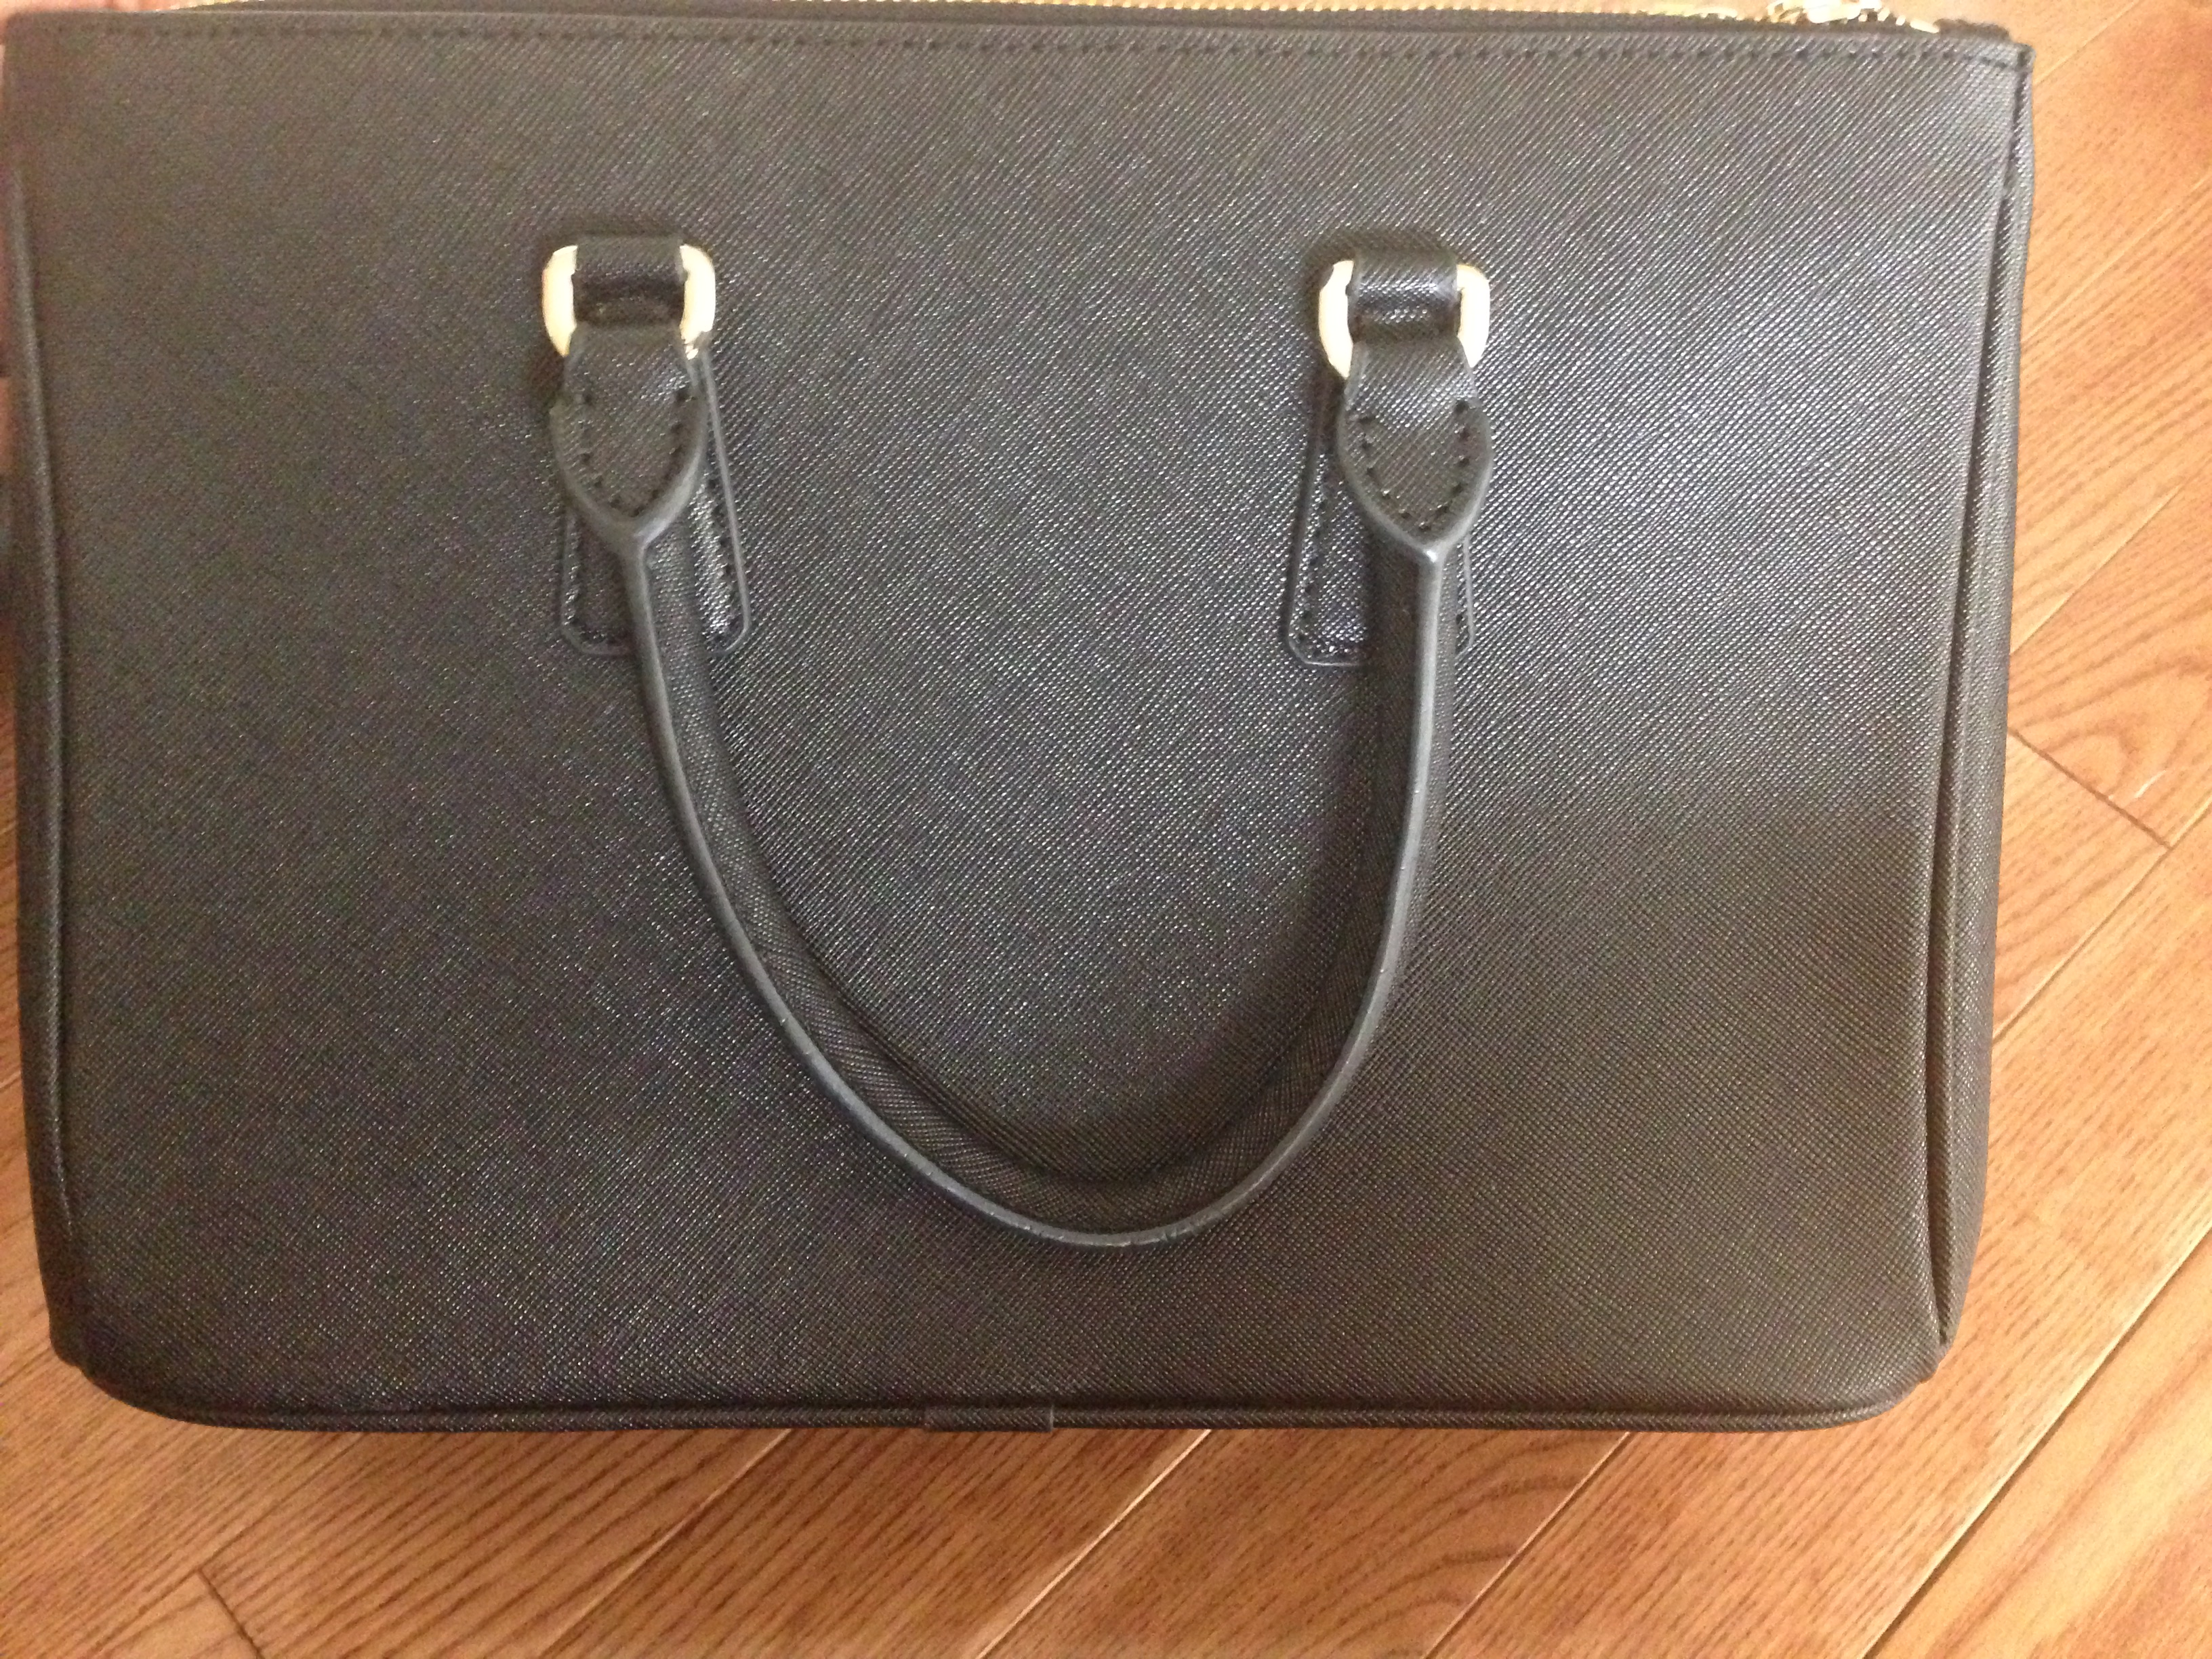 fake prada handbag